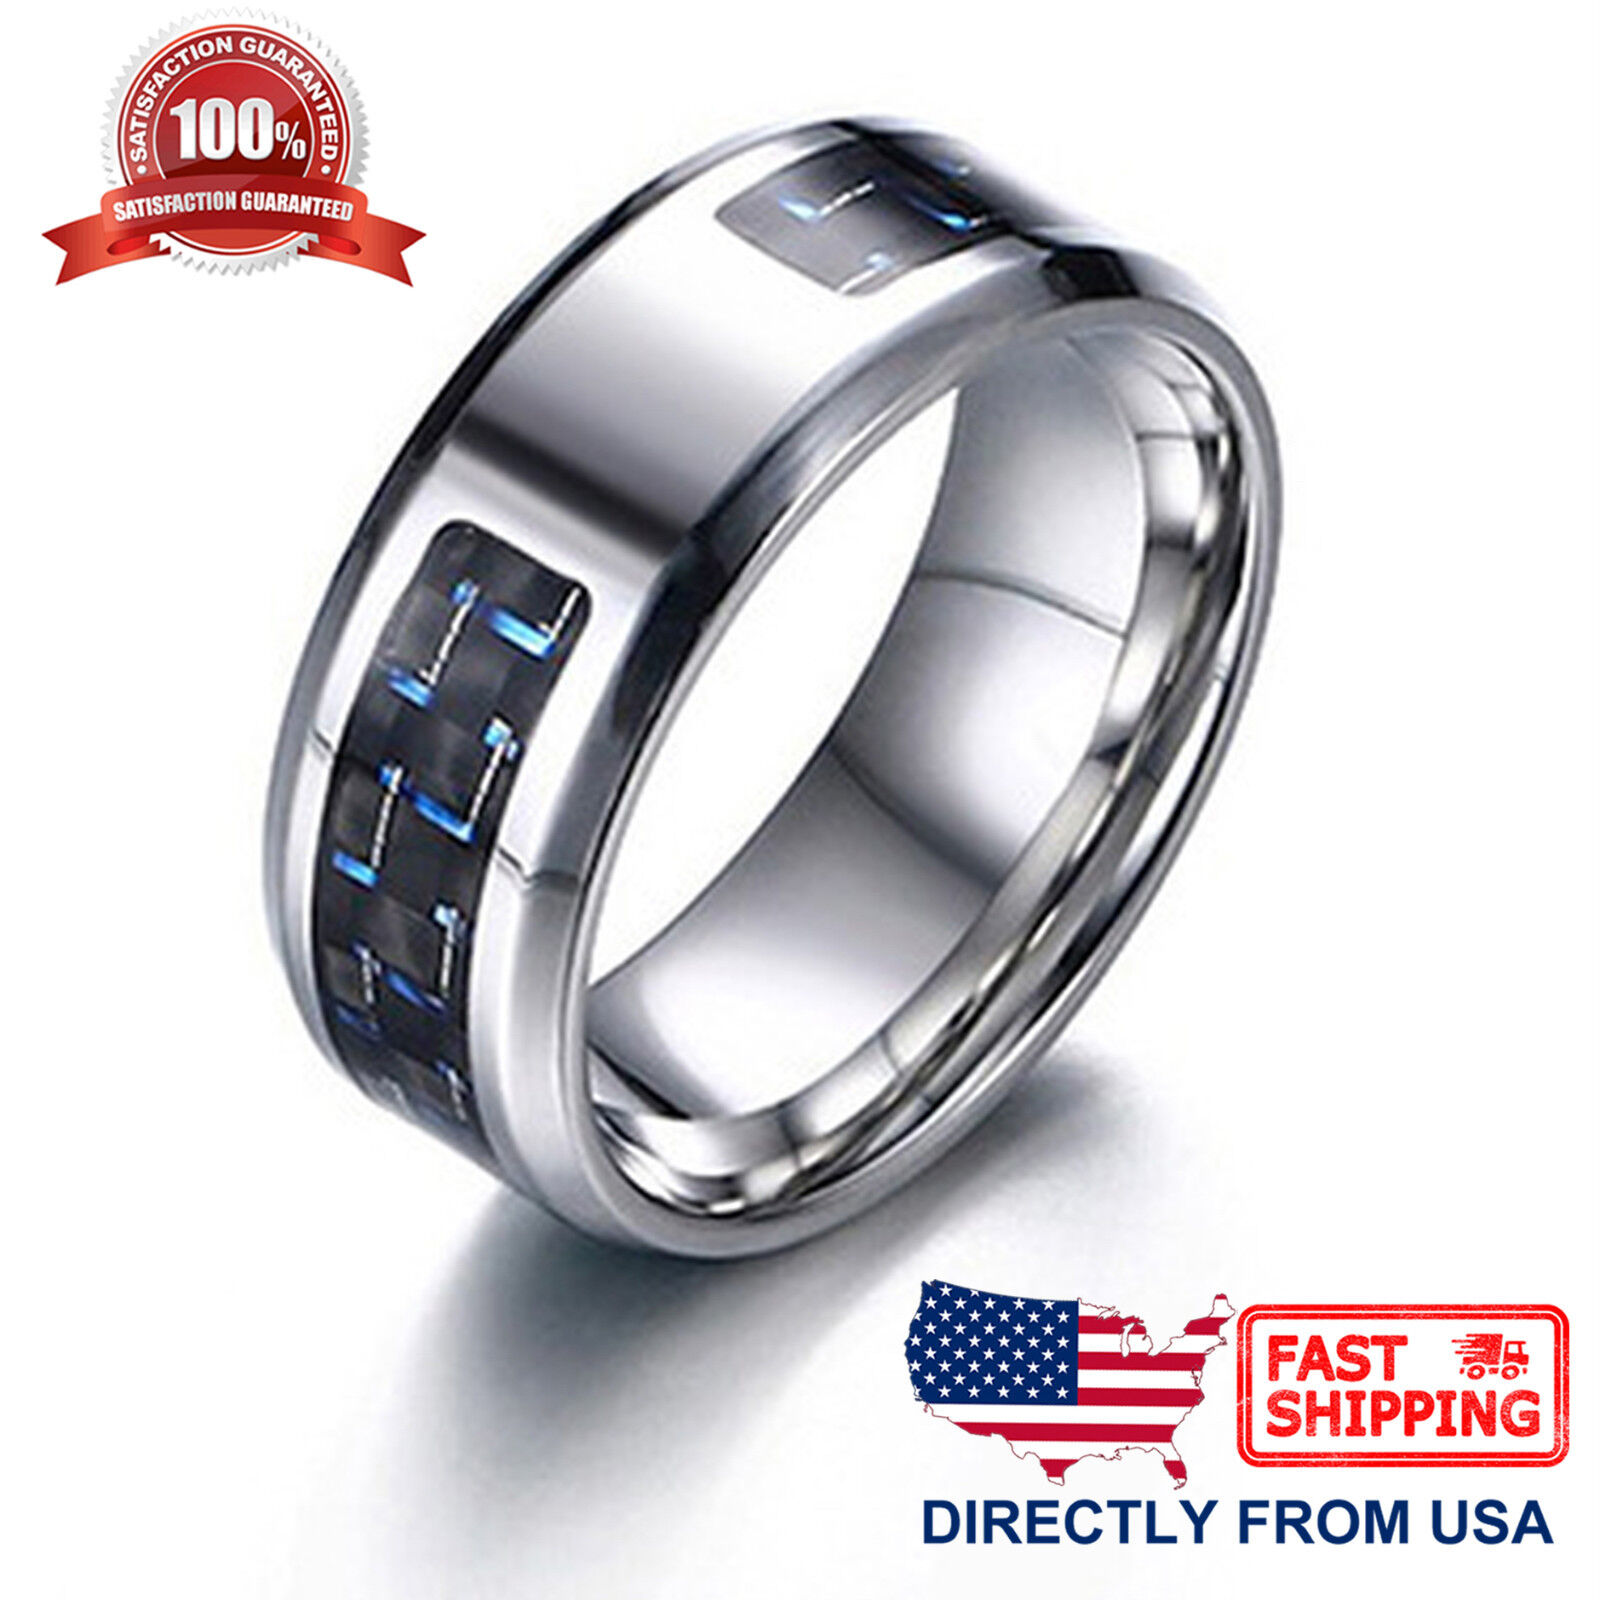 Men's Ring, Stainless Steel with Carbon Fiber 8mm Wedding Band, Comfort Fit Jewelry & Watches